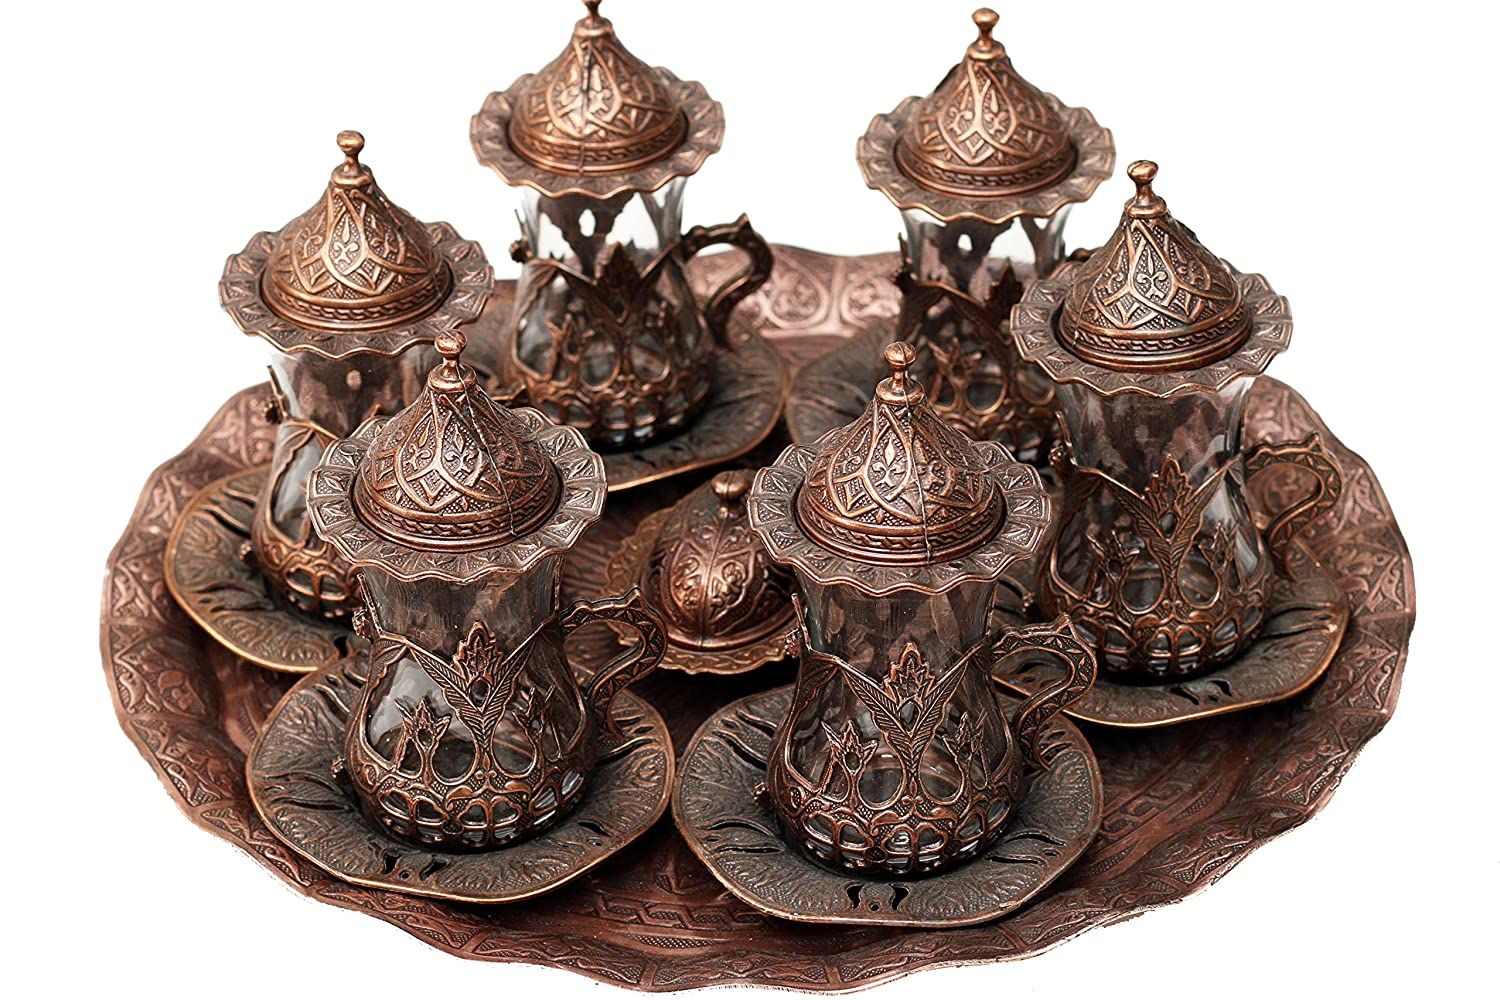 Turkish Style Tea Glasses with Holders Lids, Saucers and Tray 6 Pcs Set (bronze) Turkish Made